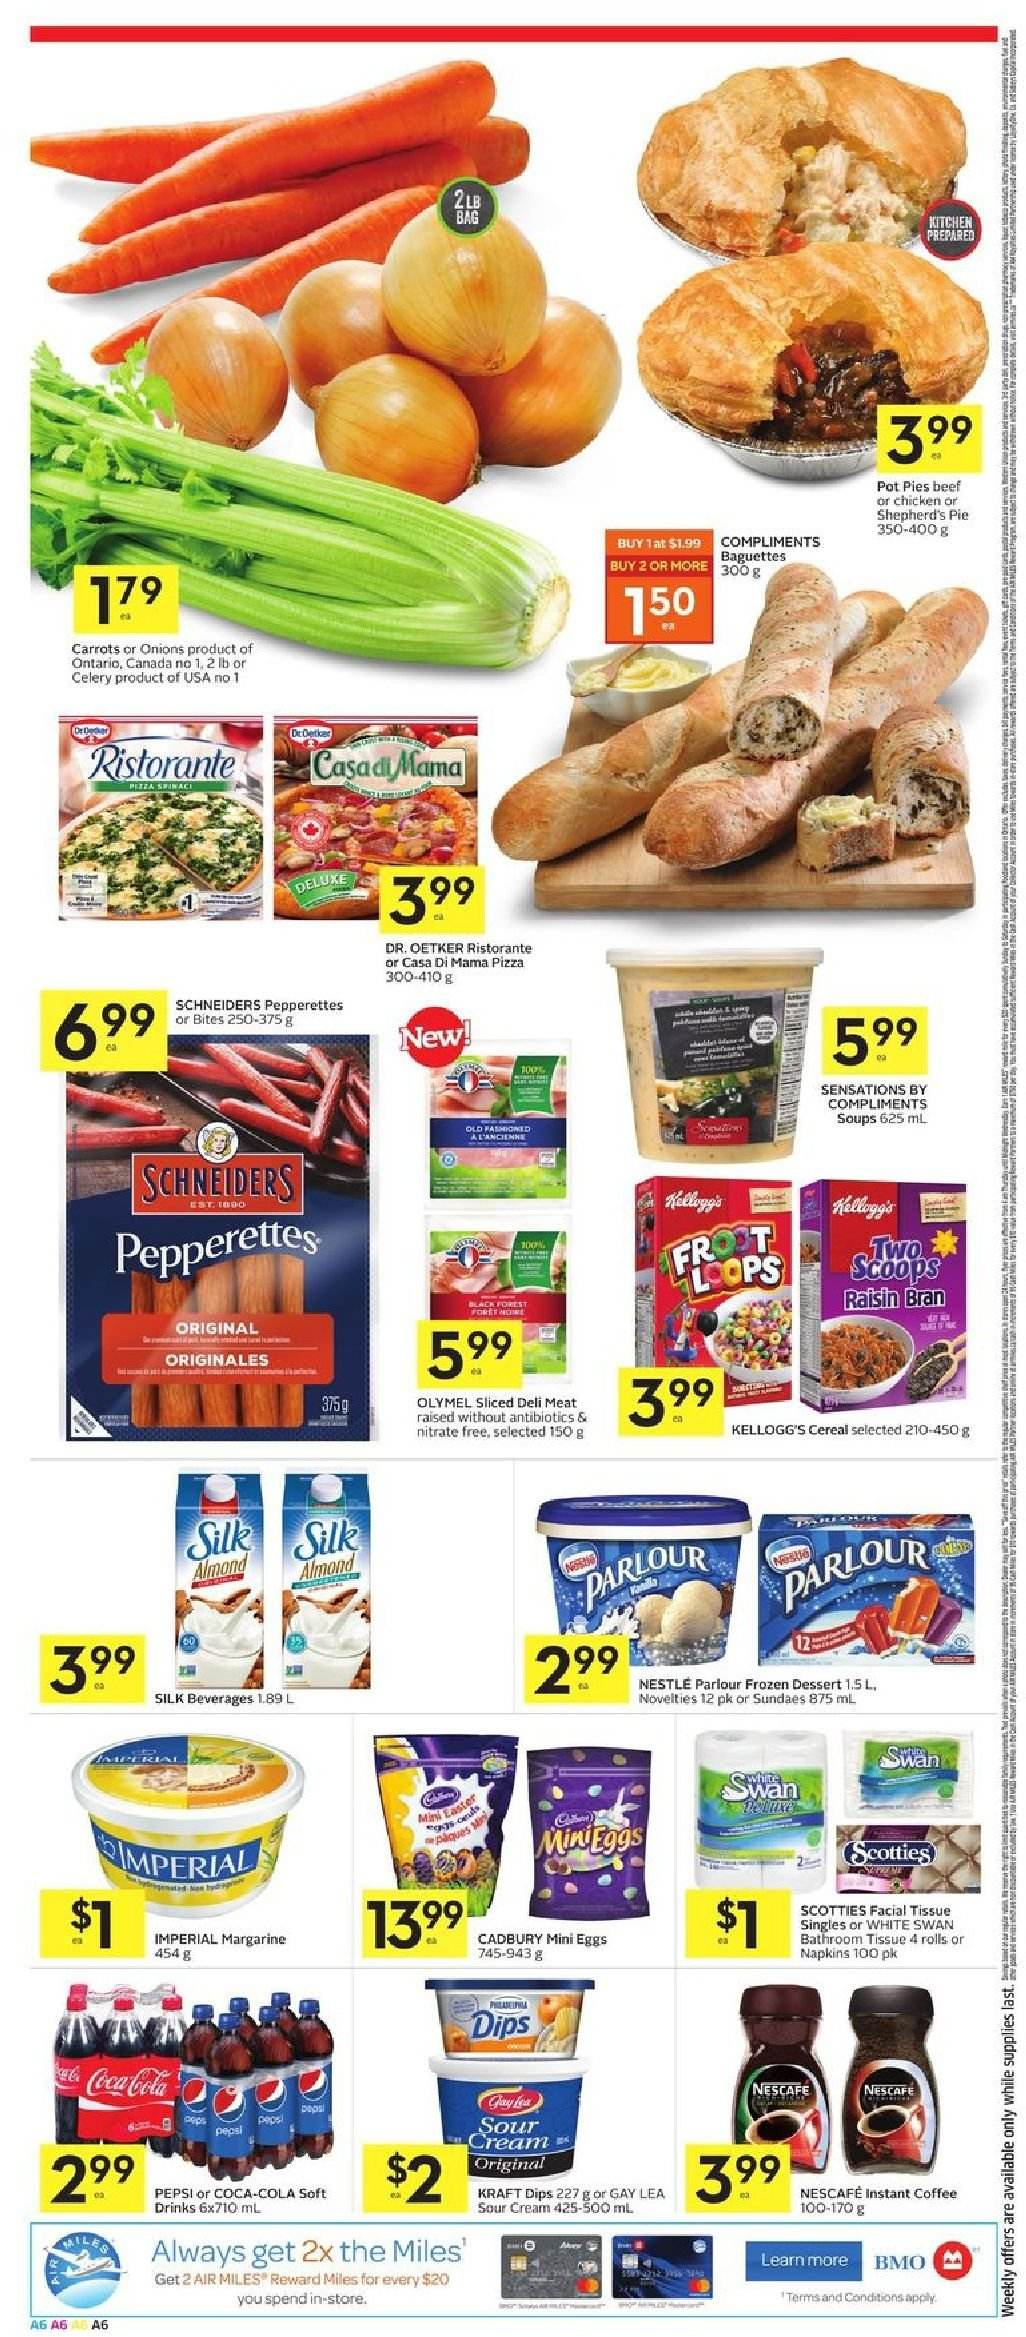 Foodland Flyer  - March 21, 2019 - March 27, 2019. Page 6.